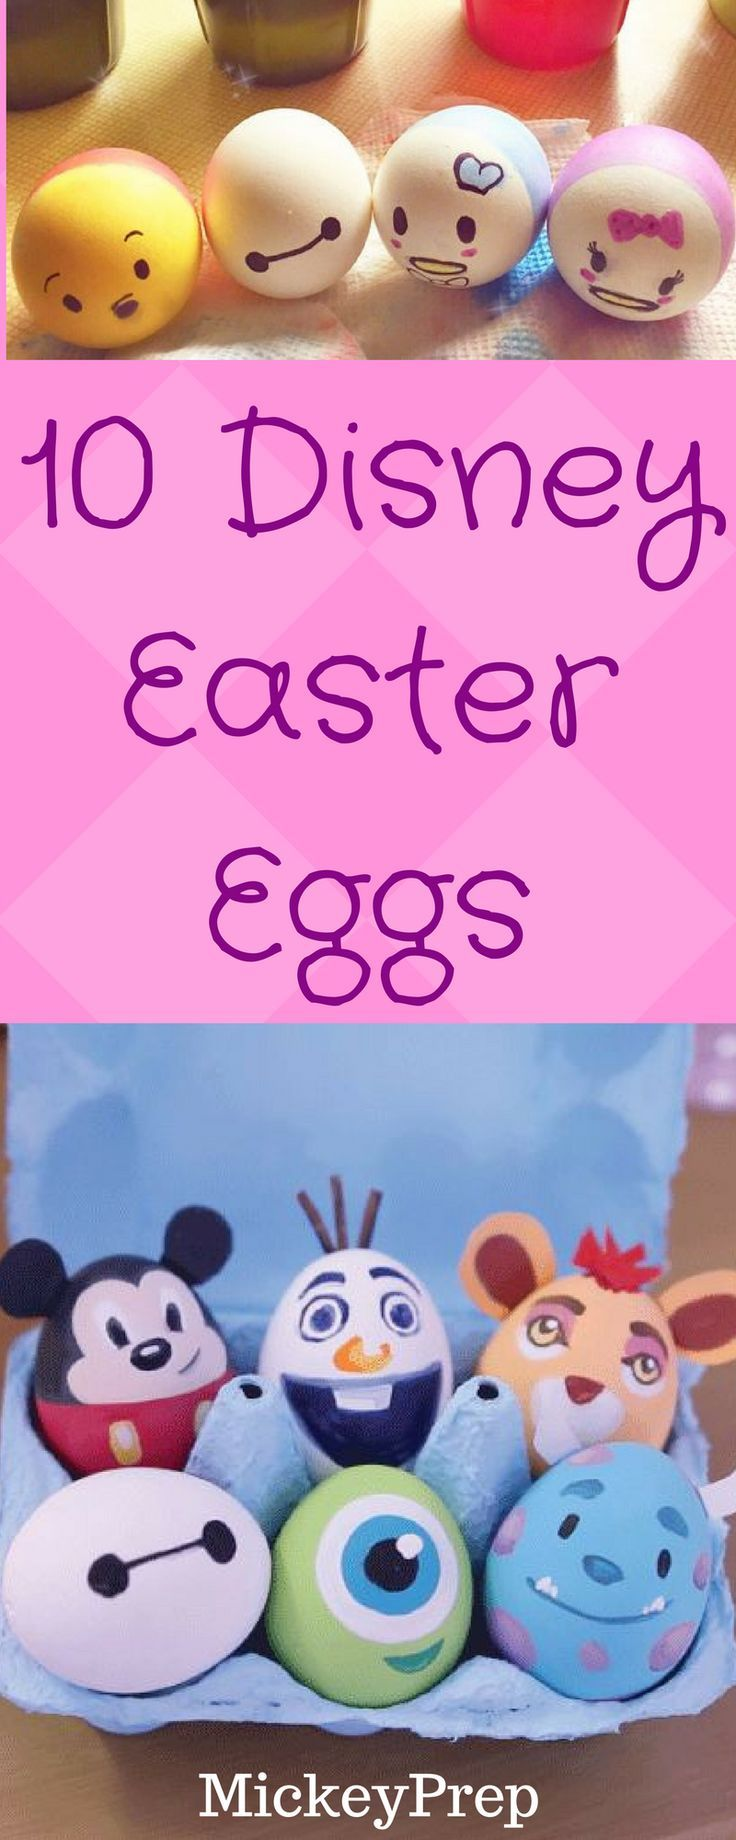 Show your Disney Side with these disney character inspired easter eggs